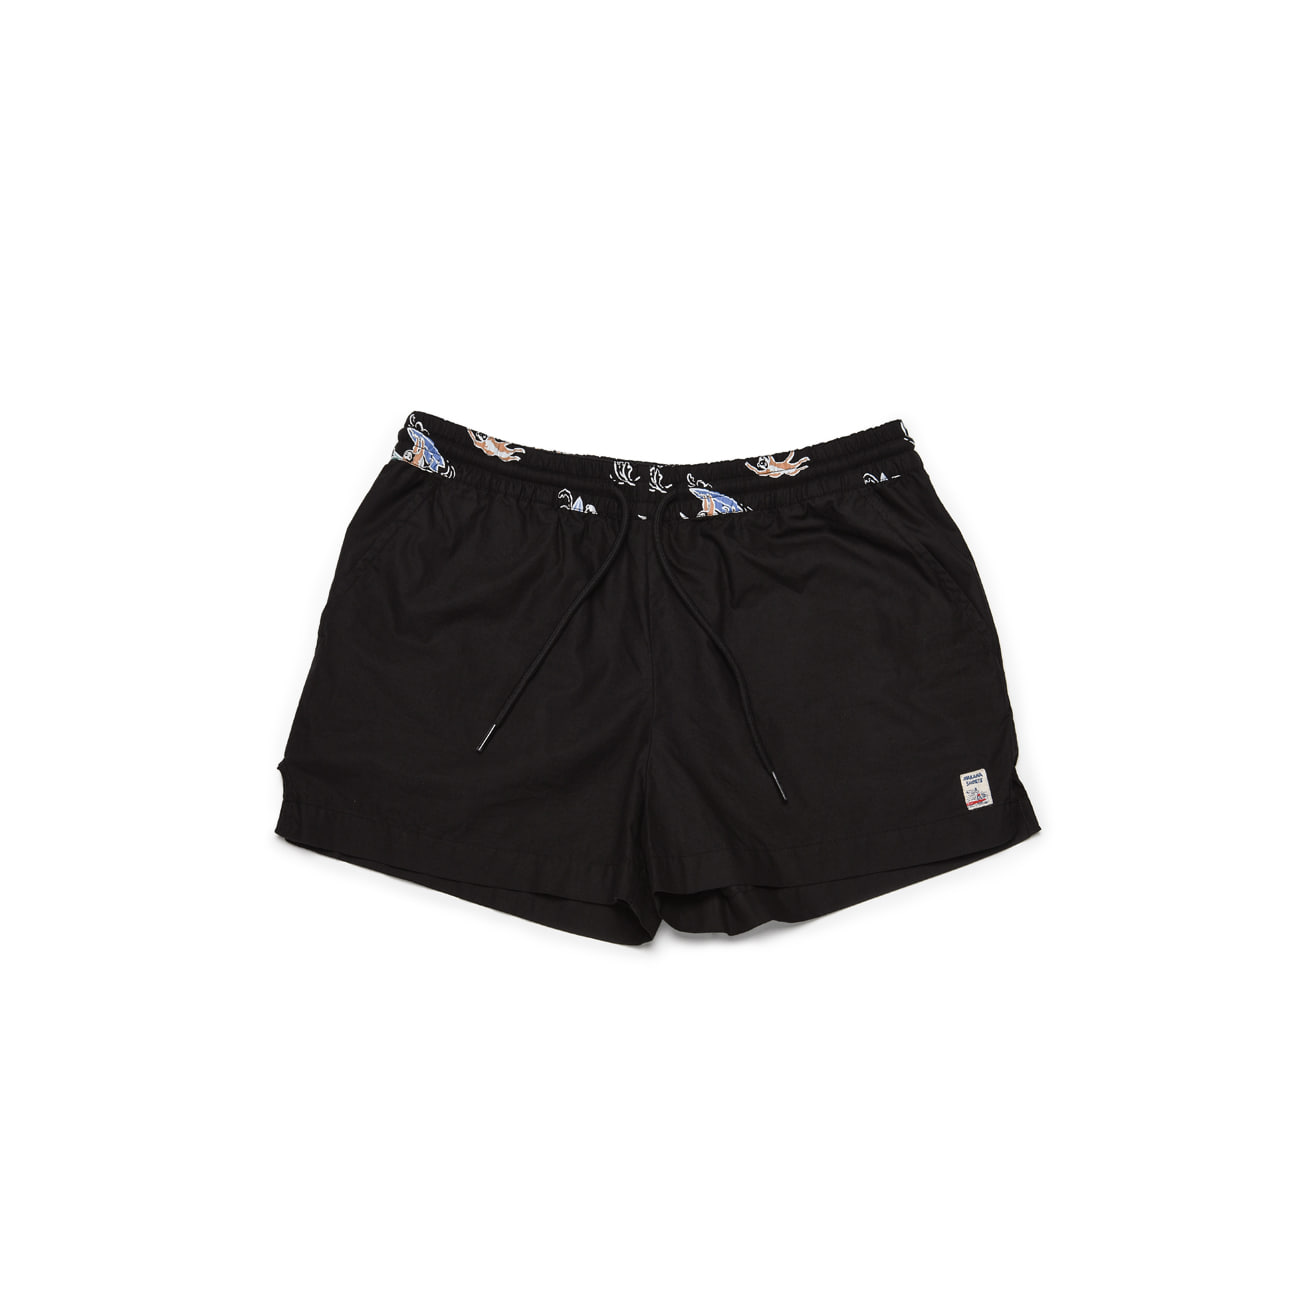 W.Basic Monkey Surf Shorts